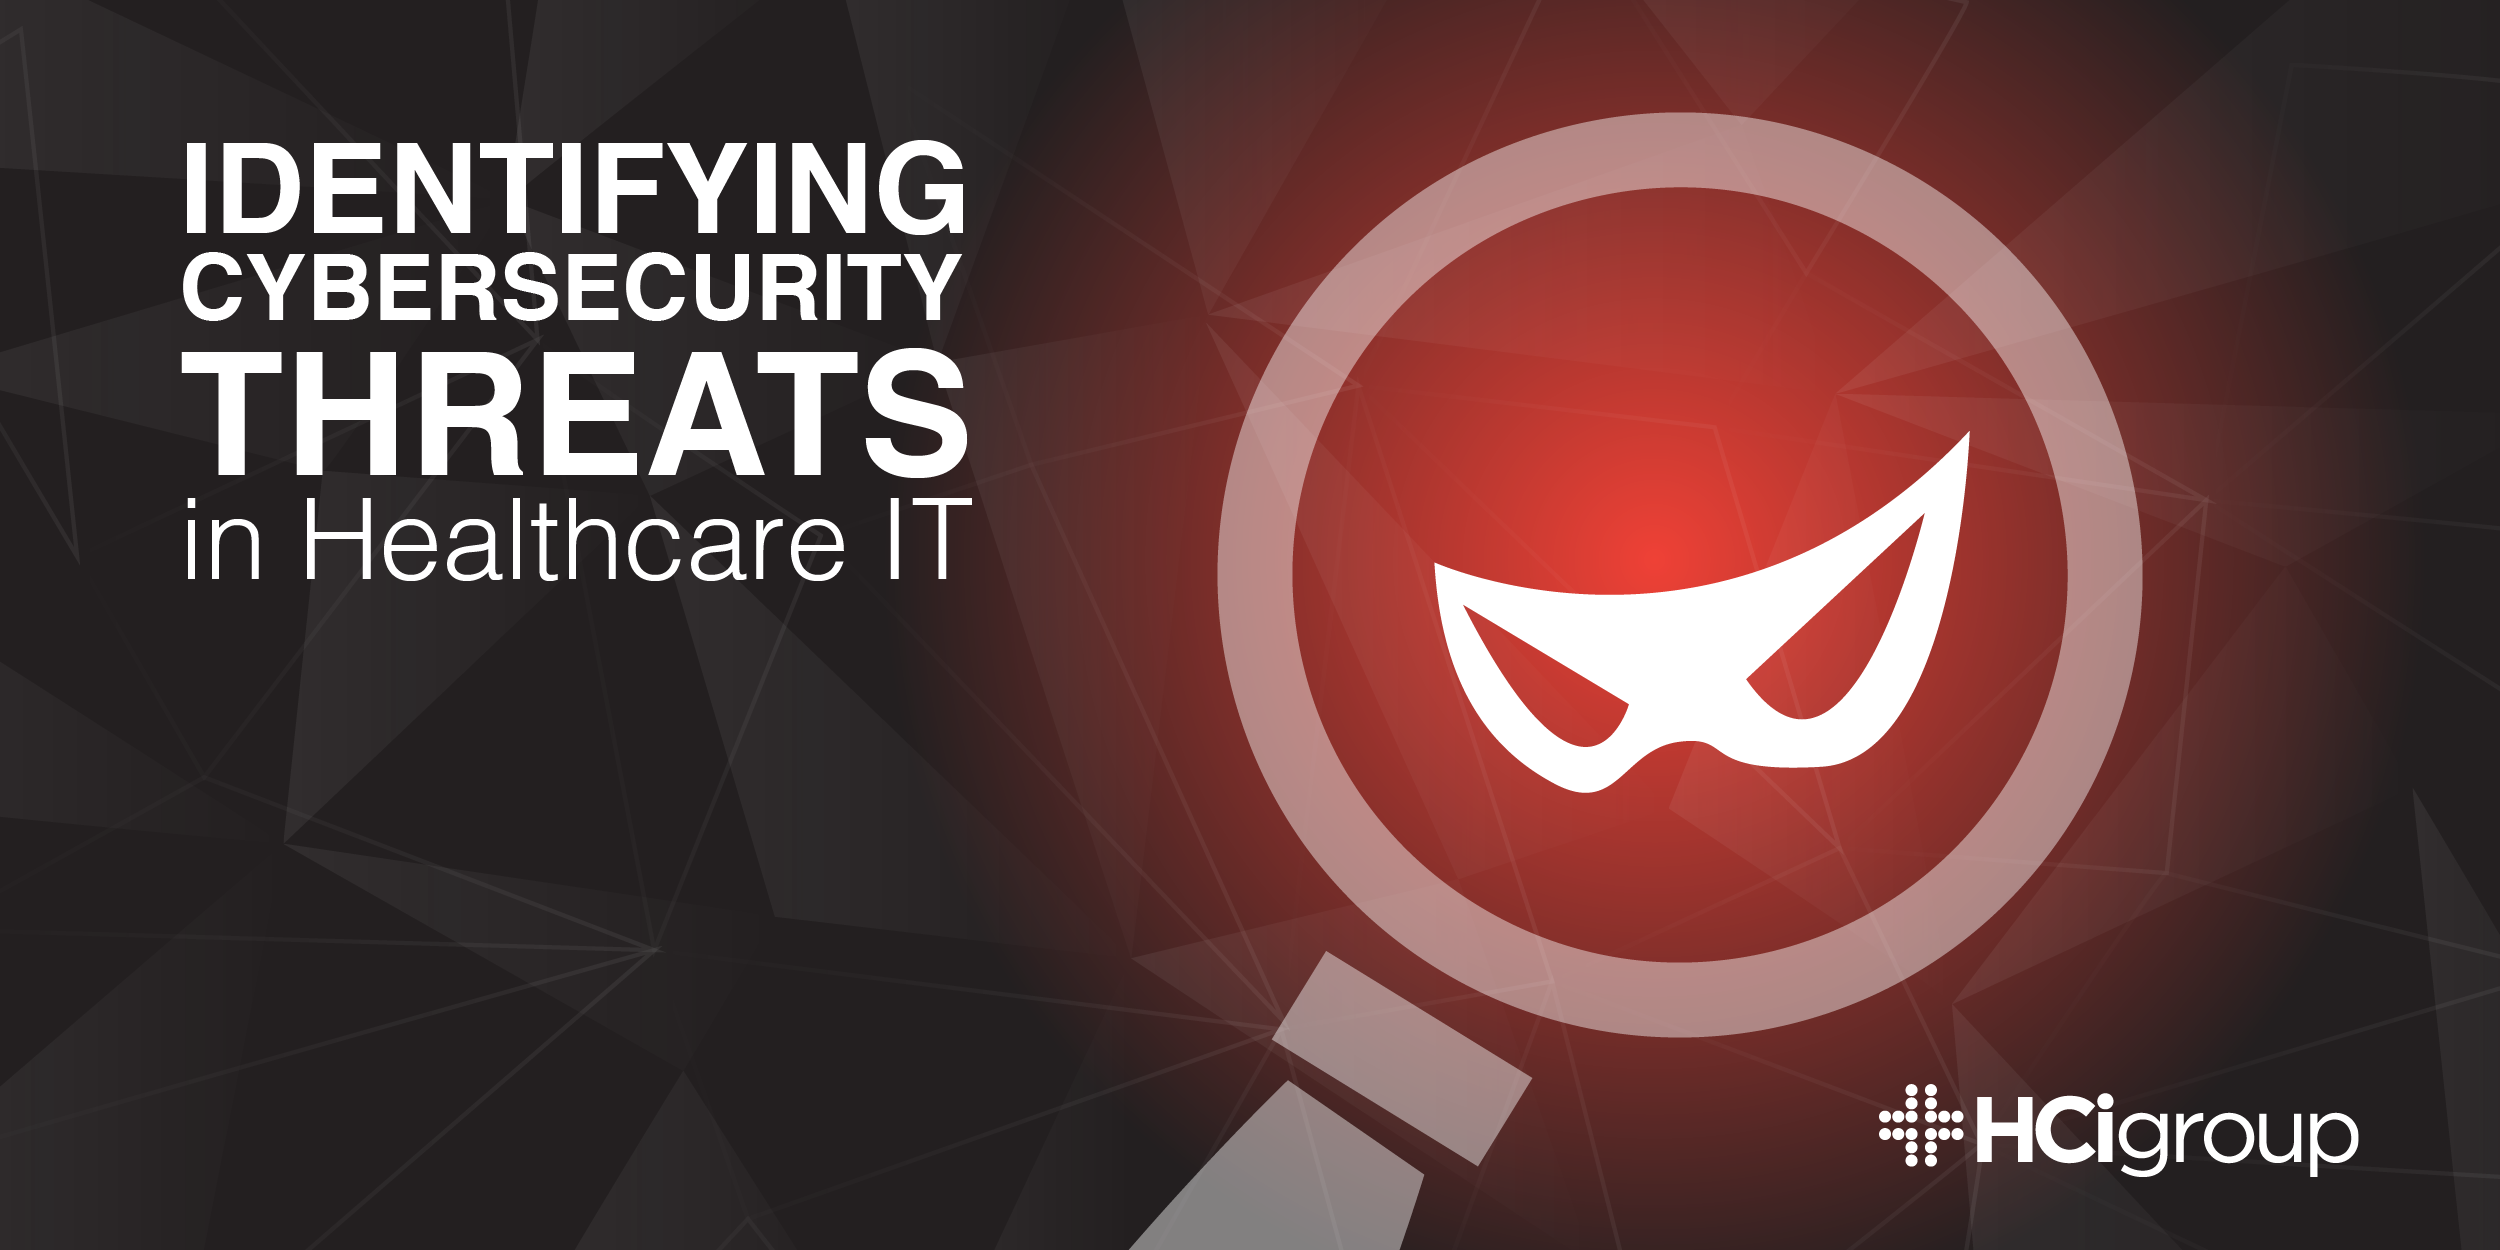 Identifying Cybersecurity Threats in Healthcare IT